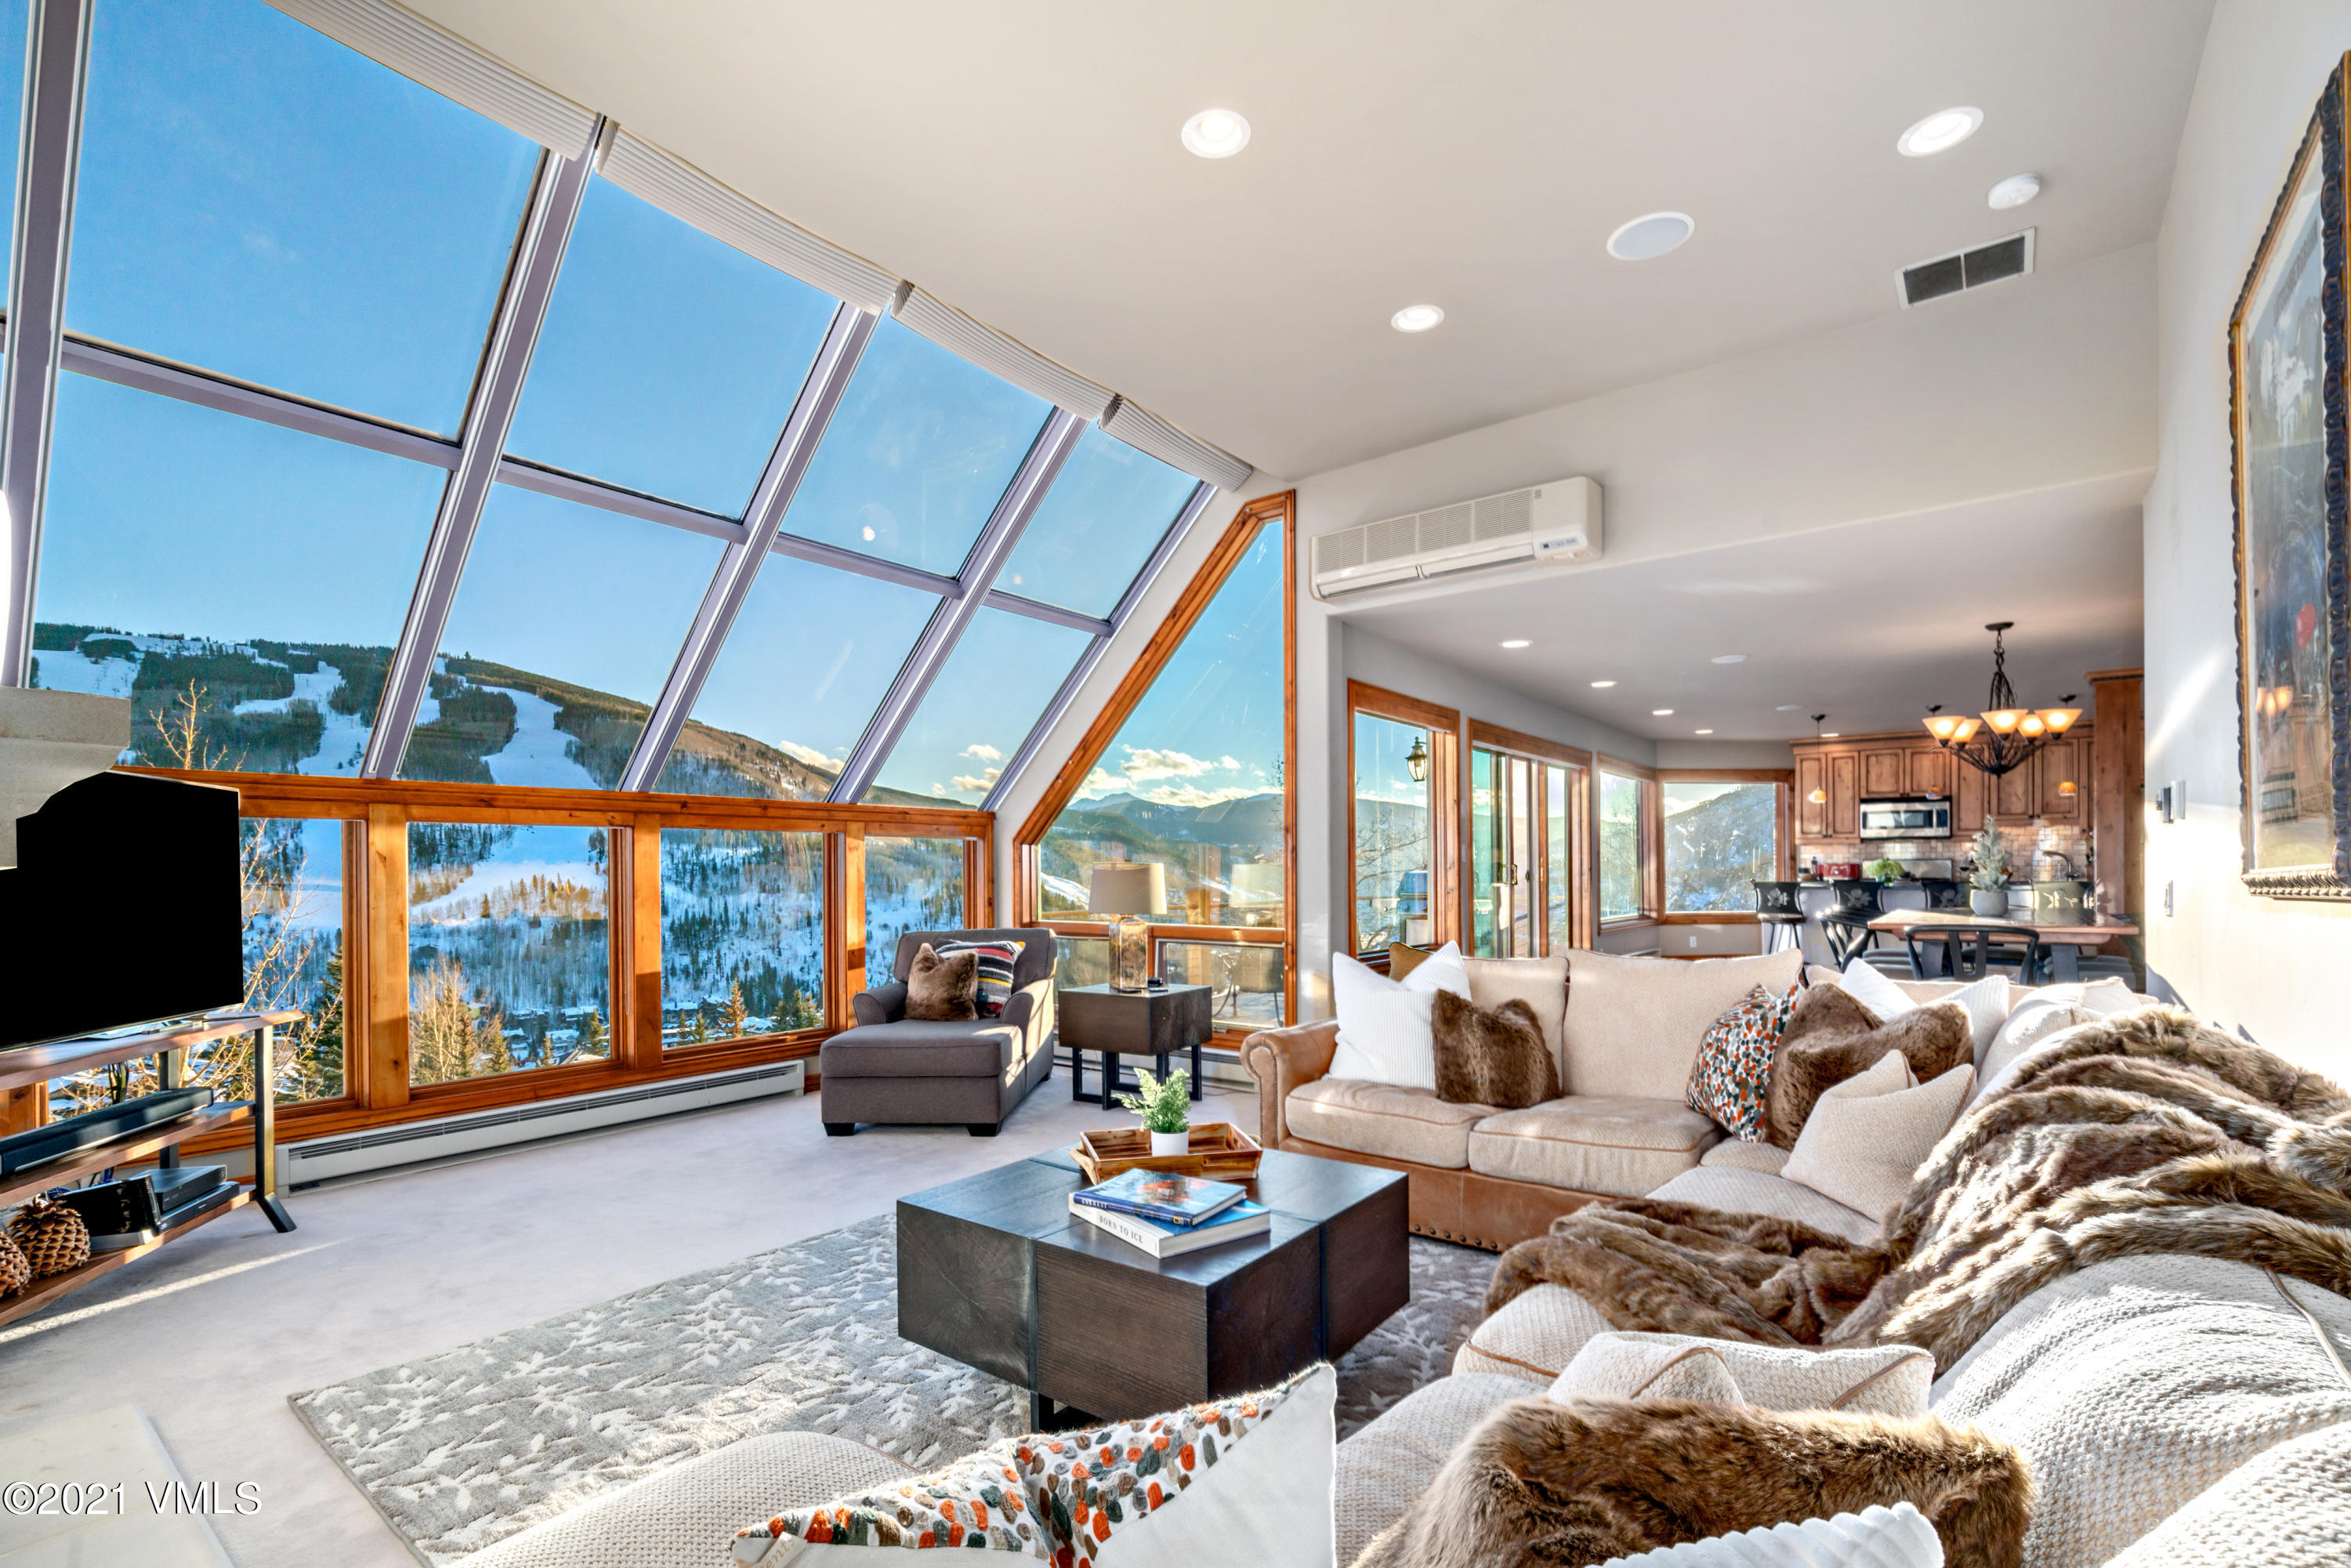 If you have been pondering whether a truly amazing and appropriately priced property would ever hit the market for you, your time has come! Experience this one of a kind ''wow'' residence with unsurpassed, panoramic views of Vail and Beaver Creek from virtually every room of this elegantly remodeled townhome. The current owner spared no expense to make sure this property met its potential.  Architectural redesign, restructuring, and expansion of this property was masterfully executed to open up the main level to make it feel like you could step across onto the ski slopes all while basking in the sunlight. This home flawlessly brings the outdoors in by replacing most of the windows with larger windows for floor to ceiling glass.  The new fireplace was relocated off of the view wall to take the views from being incredible to being unsurpassed.  Luxuriate on one of three outdoor patios, the covered heated patio with an enormous hot tub on the family room level, a heated patio off of the main level dining room with a gorgeous forged steel fire pit, and third, a rooftop deck that feels like it is on top of the world.  Apres ski in the outdoor hot tub and then come up and hang out around the outdoor fire pit.  Take a quick nap and then enjoy an elegant or casual evening with family and friends in the spacious open dining area while taking in the magical ambiance of another Vail Mountain alpen glow evening. The rooftop deck is conveniently accessible from both the main house and the master bedroom where you can wind down and watch the sunset. The master bedroom is an oasis on its own level with a bed wall that is perfectly situated for you to start the day off right by opening yours eyes to Vail's ski slopes.  Your guests won't feel they got the short-end-of-the-stick as each en suite guest room is located off the family room and have equally magnificent views.Situated only minutes from Vail, this home offers luxury and sophistication in the... highly sought after neighbor